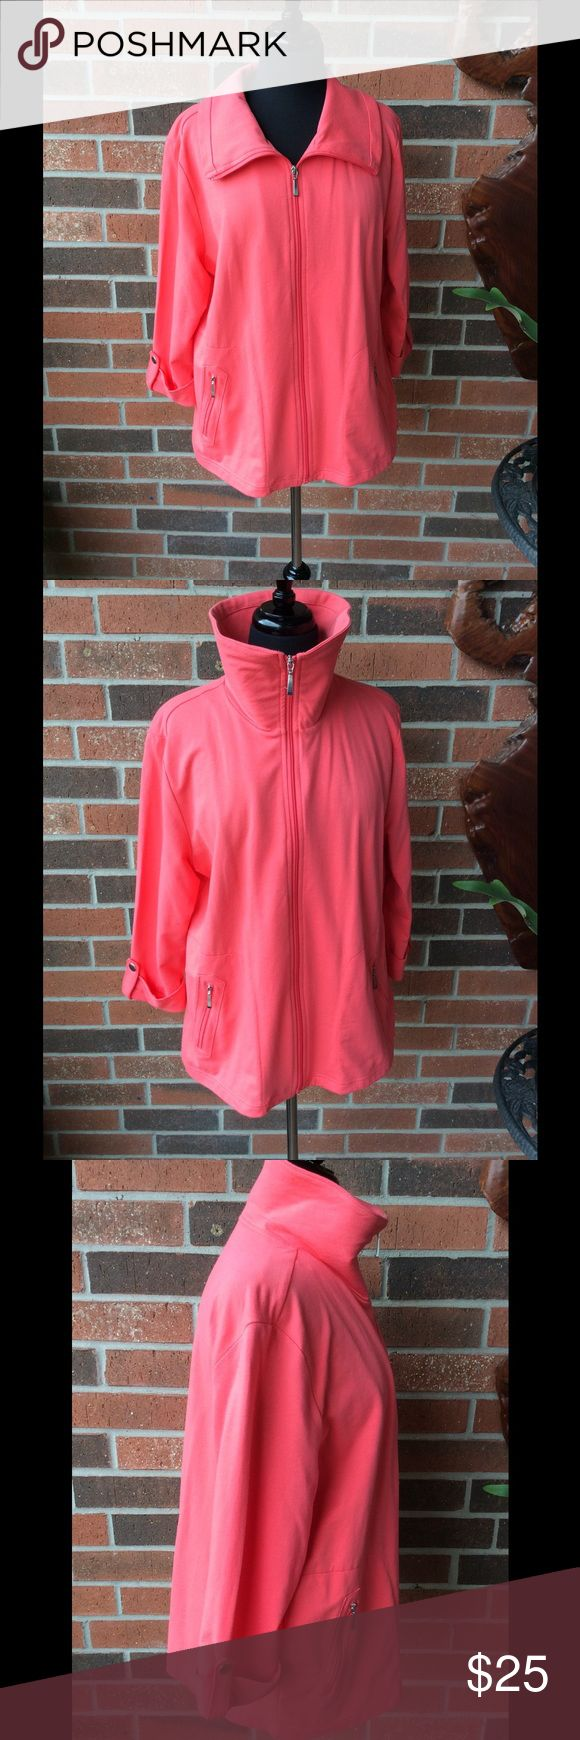 "Karen Scott Sport Jacket NWOT Color is bright coral. 26"" long. 3/4"" sleeves. Silver hardware. 97% cotton 3% spandex. Side zip pockets. Bought two colors and keeping one and selling one Karen Scott Jackets & Coats"